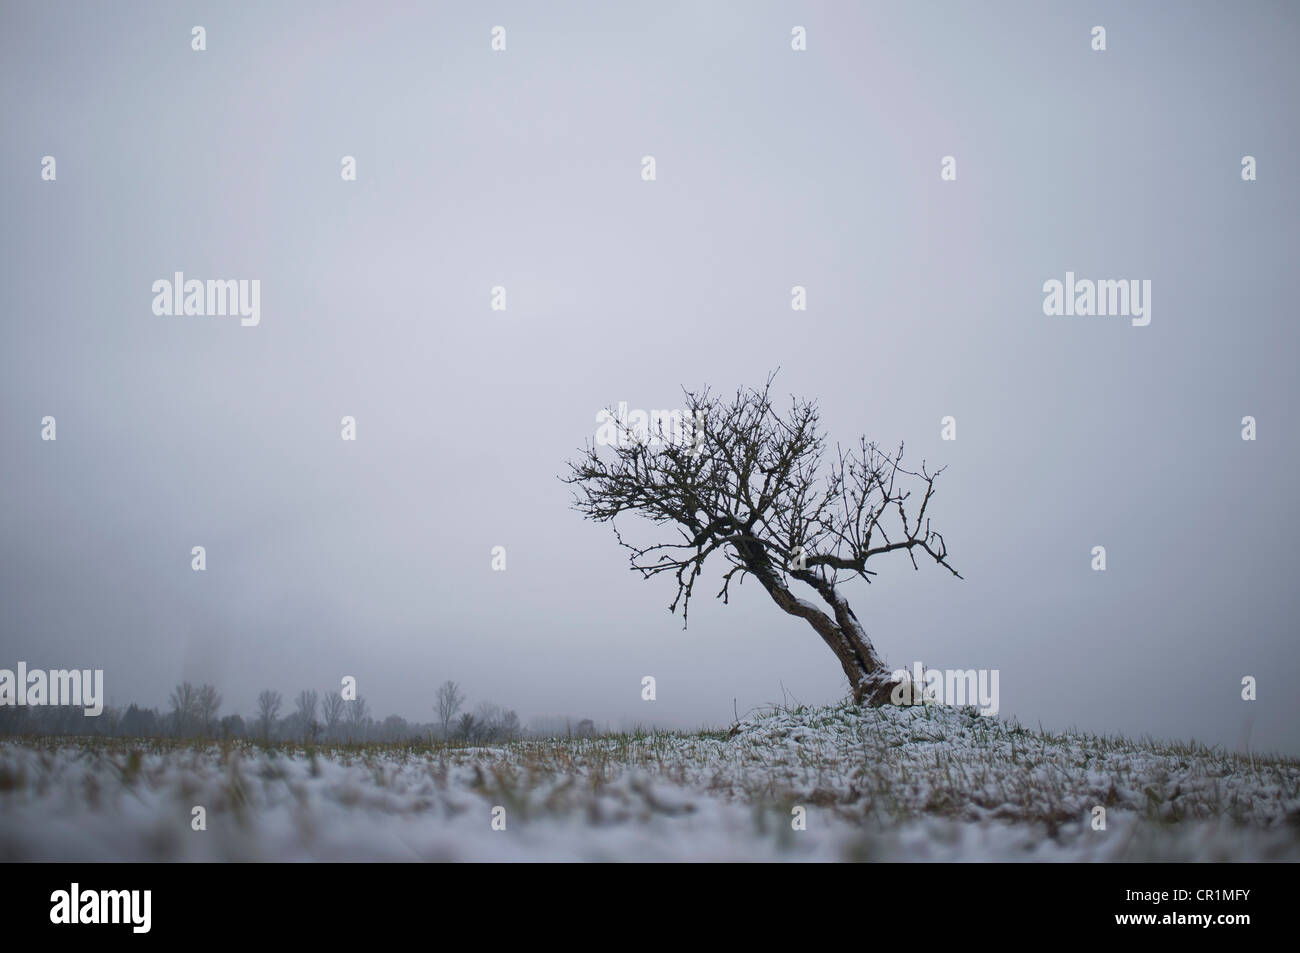 Bare tree growing in snowy landscape - Stock Image